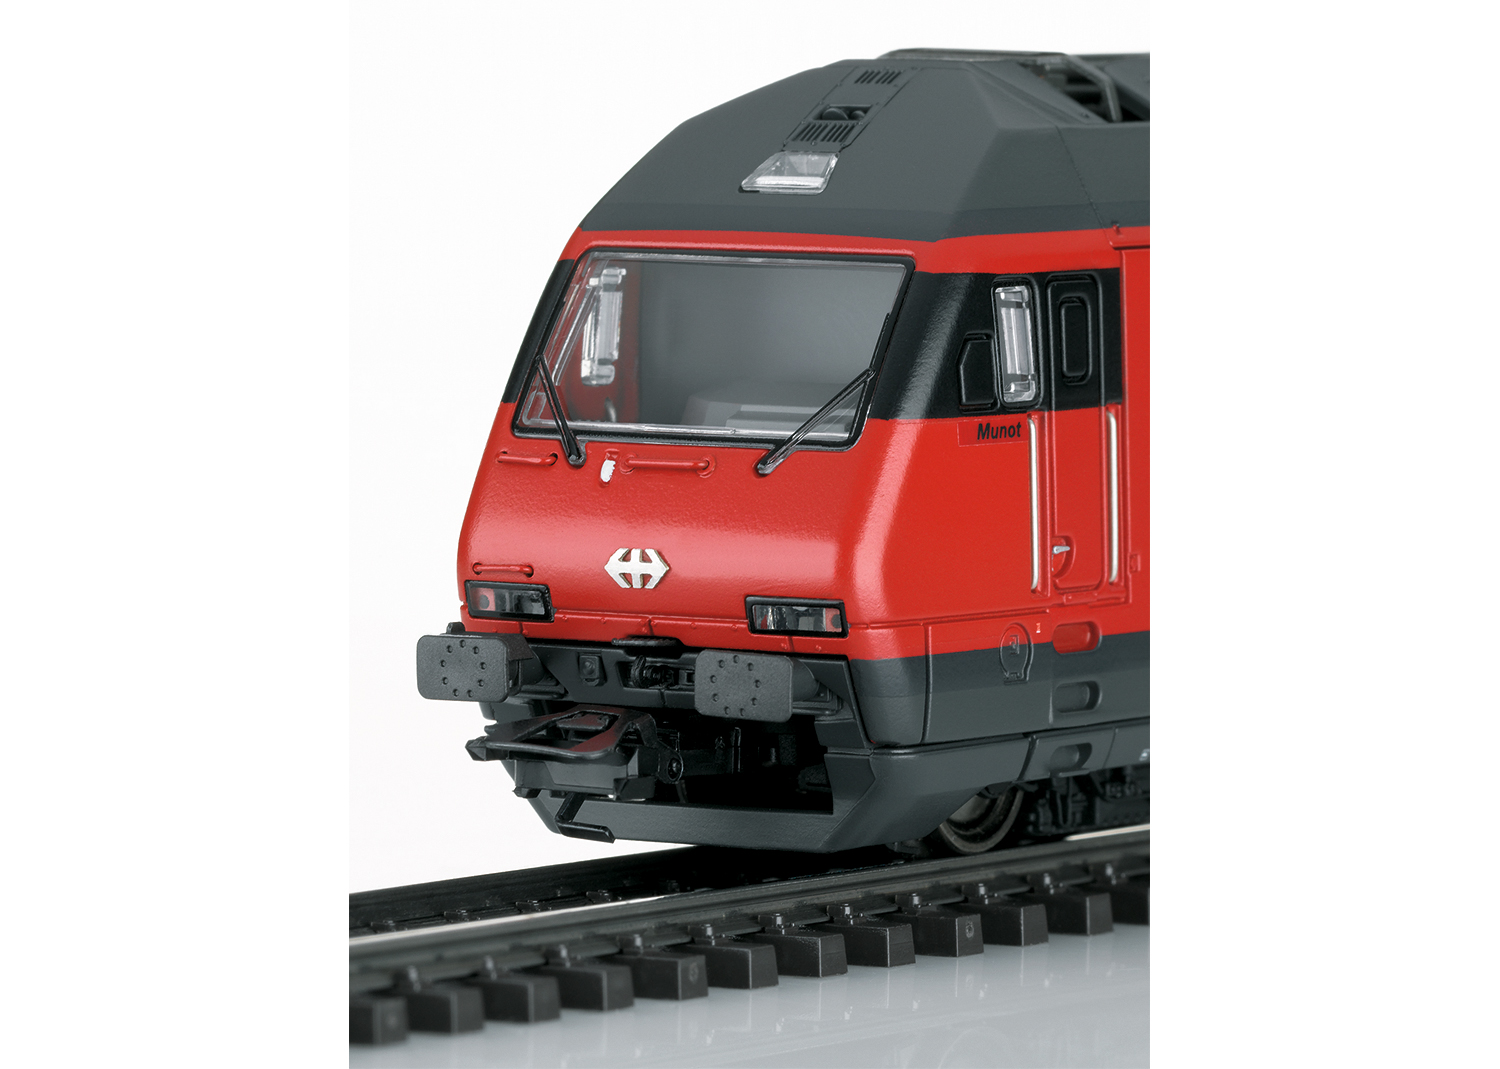 Märklin 39461 <br/>Elektrolokomotive Re 460